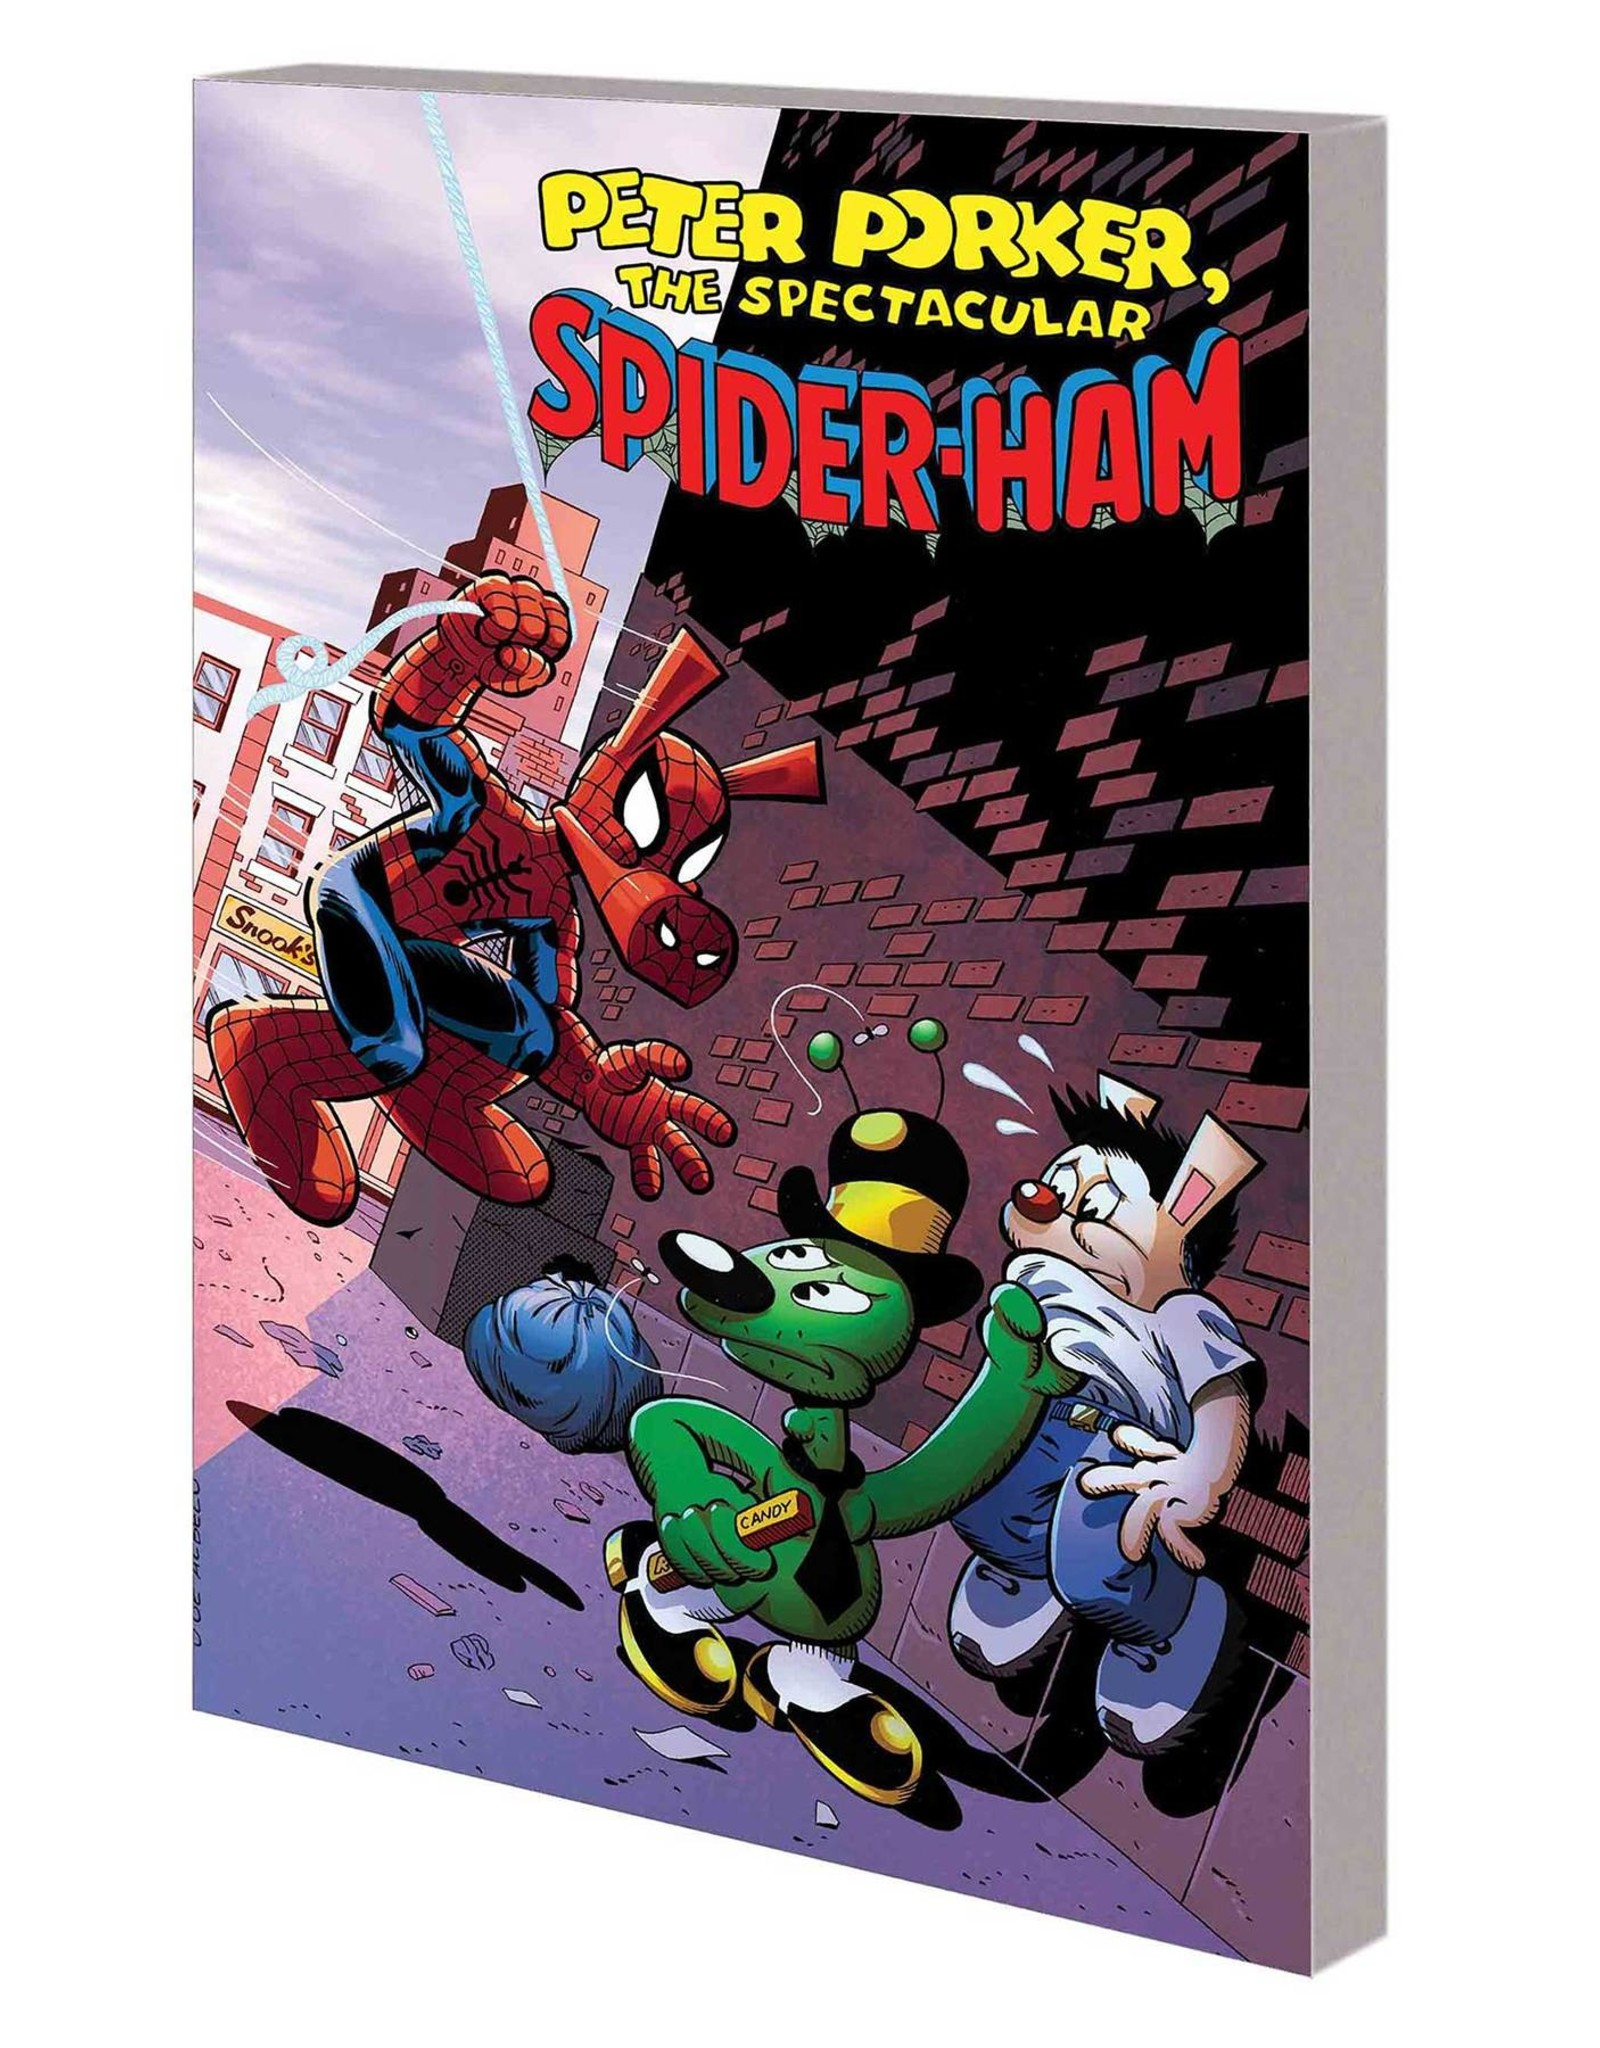 MARVEL COMICS PETER PORKER SPECTACULAR SPIDER-HAM COMPLETE COLLECT TP VOL